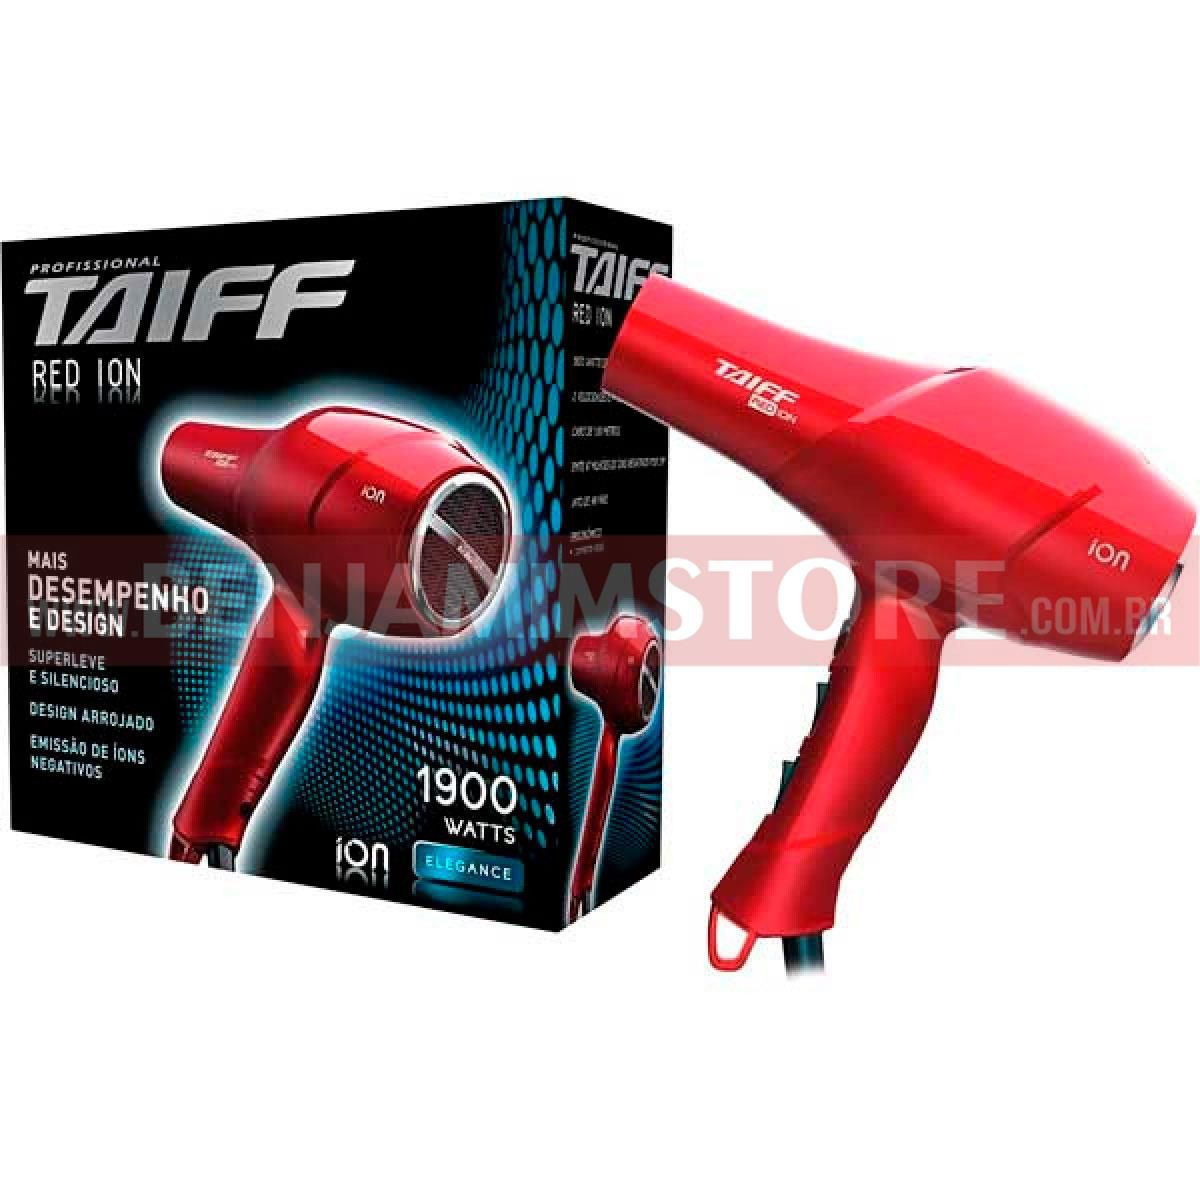 Kit Taiff Red Ion - Secador 1900w + Chapinha de Cabelo Taiff Red Ion